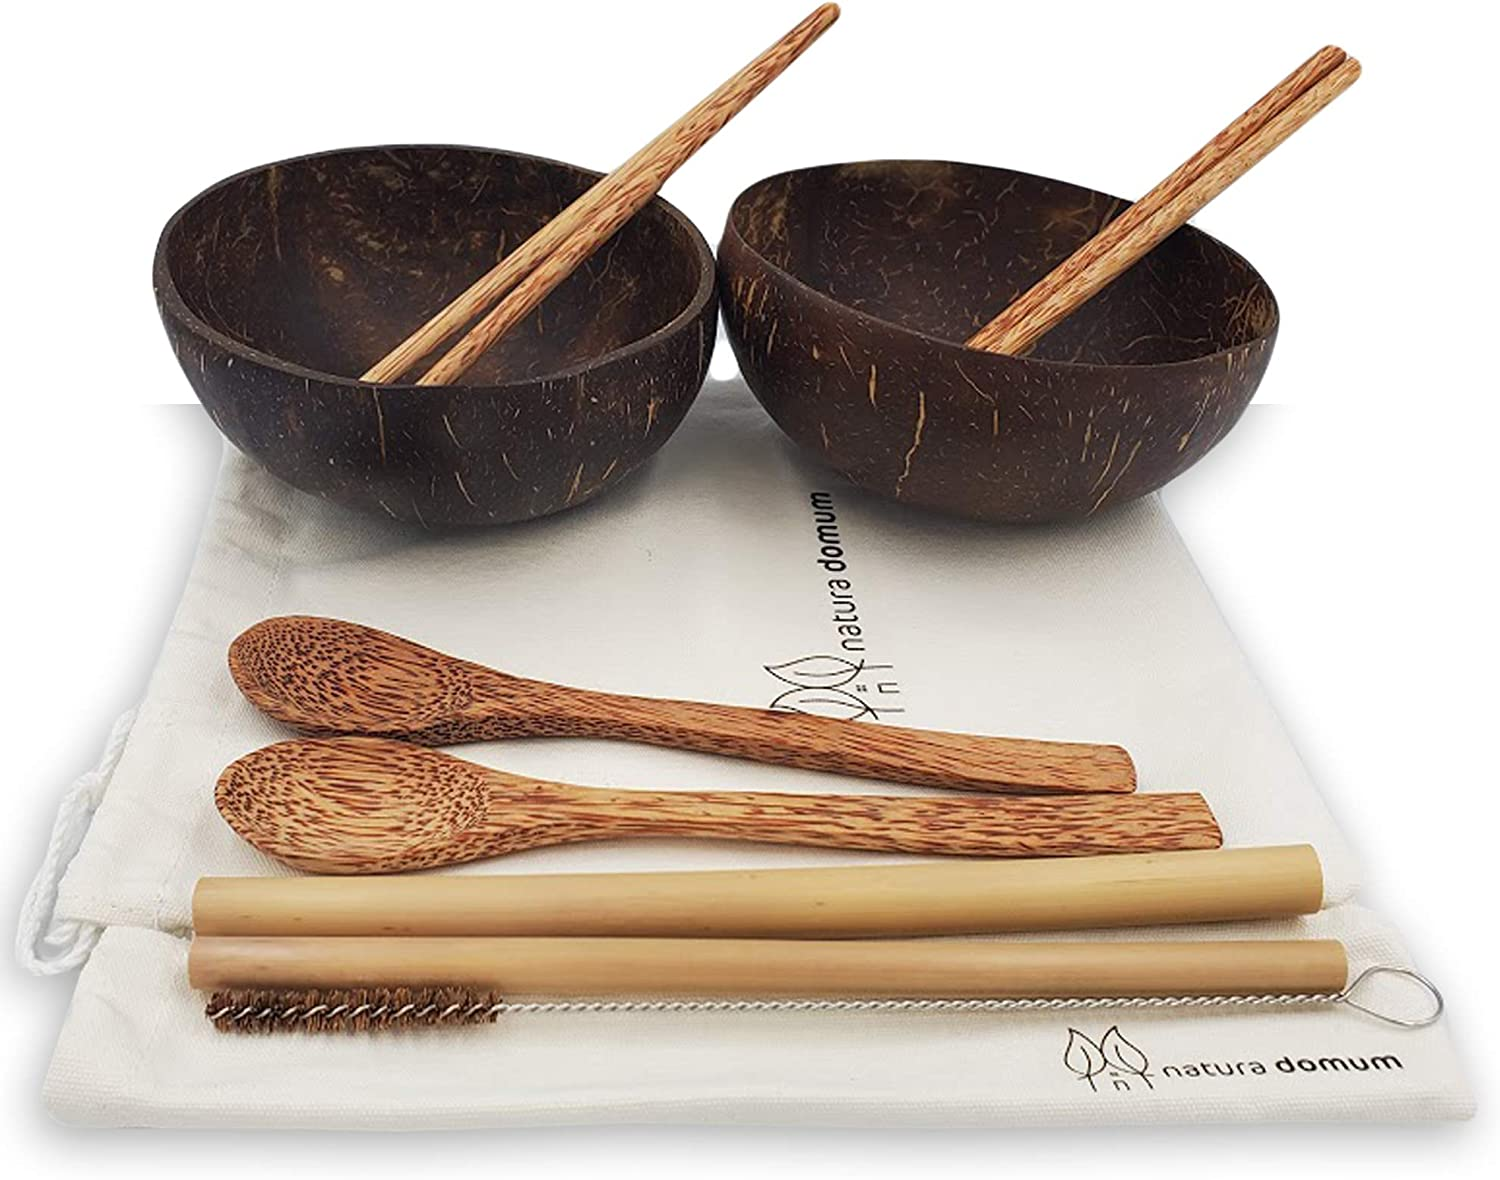 Coconut Bowls with Spoons Gift Set of 2. Includes Coconut Cutlery 2 Spoons, 2 Chopsticks, 2 Bamboo Straws. With Travel Gift Bag. 100% Natural, Vegan, Eco Friendly, Handmade, Reusable